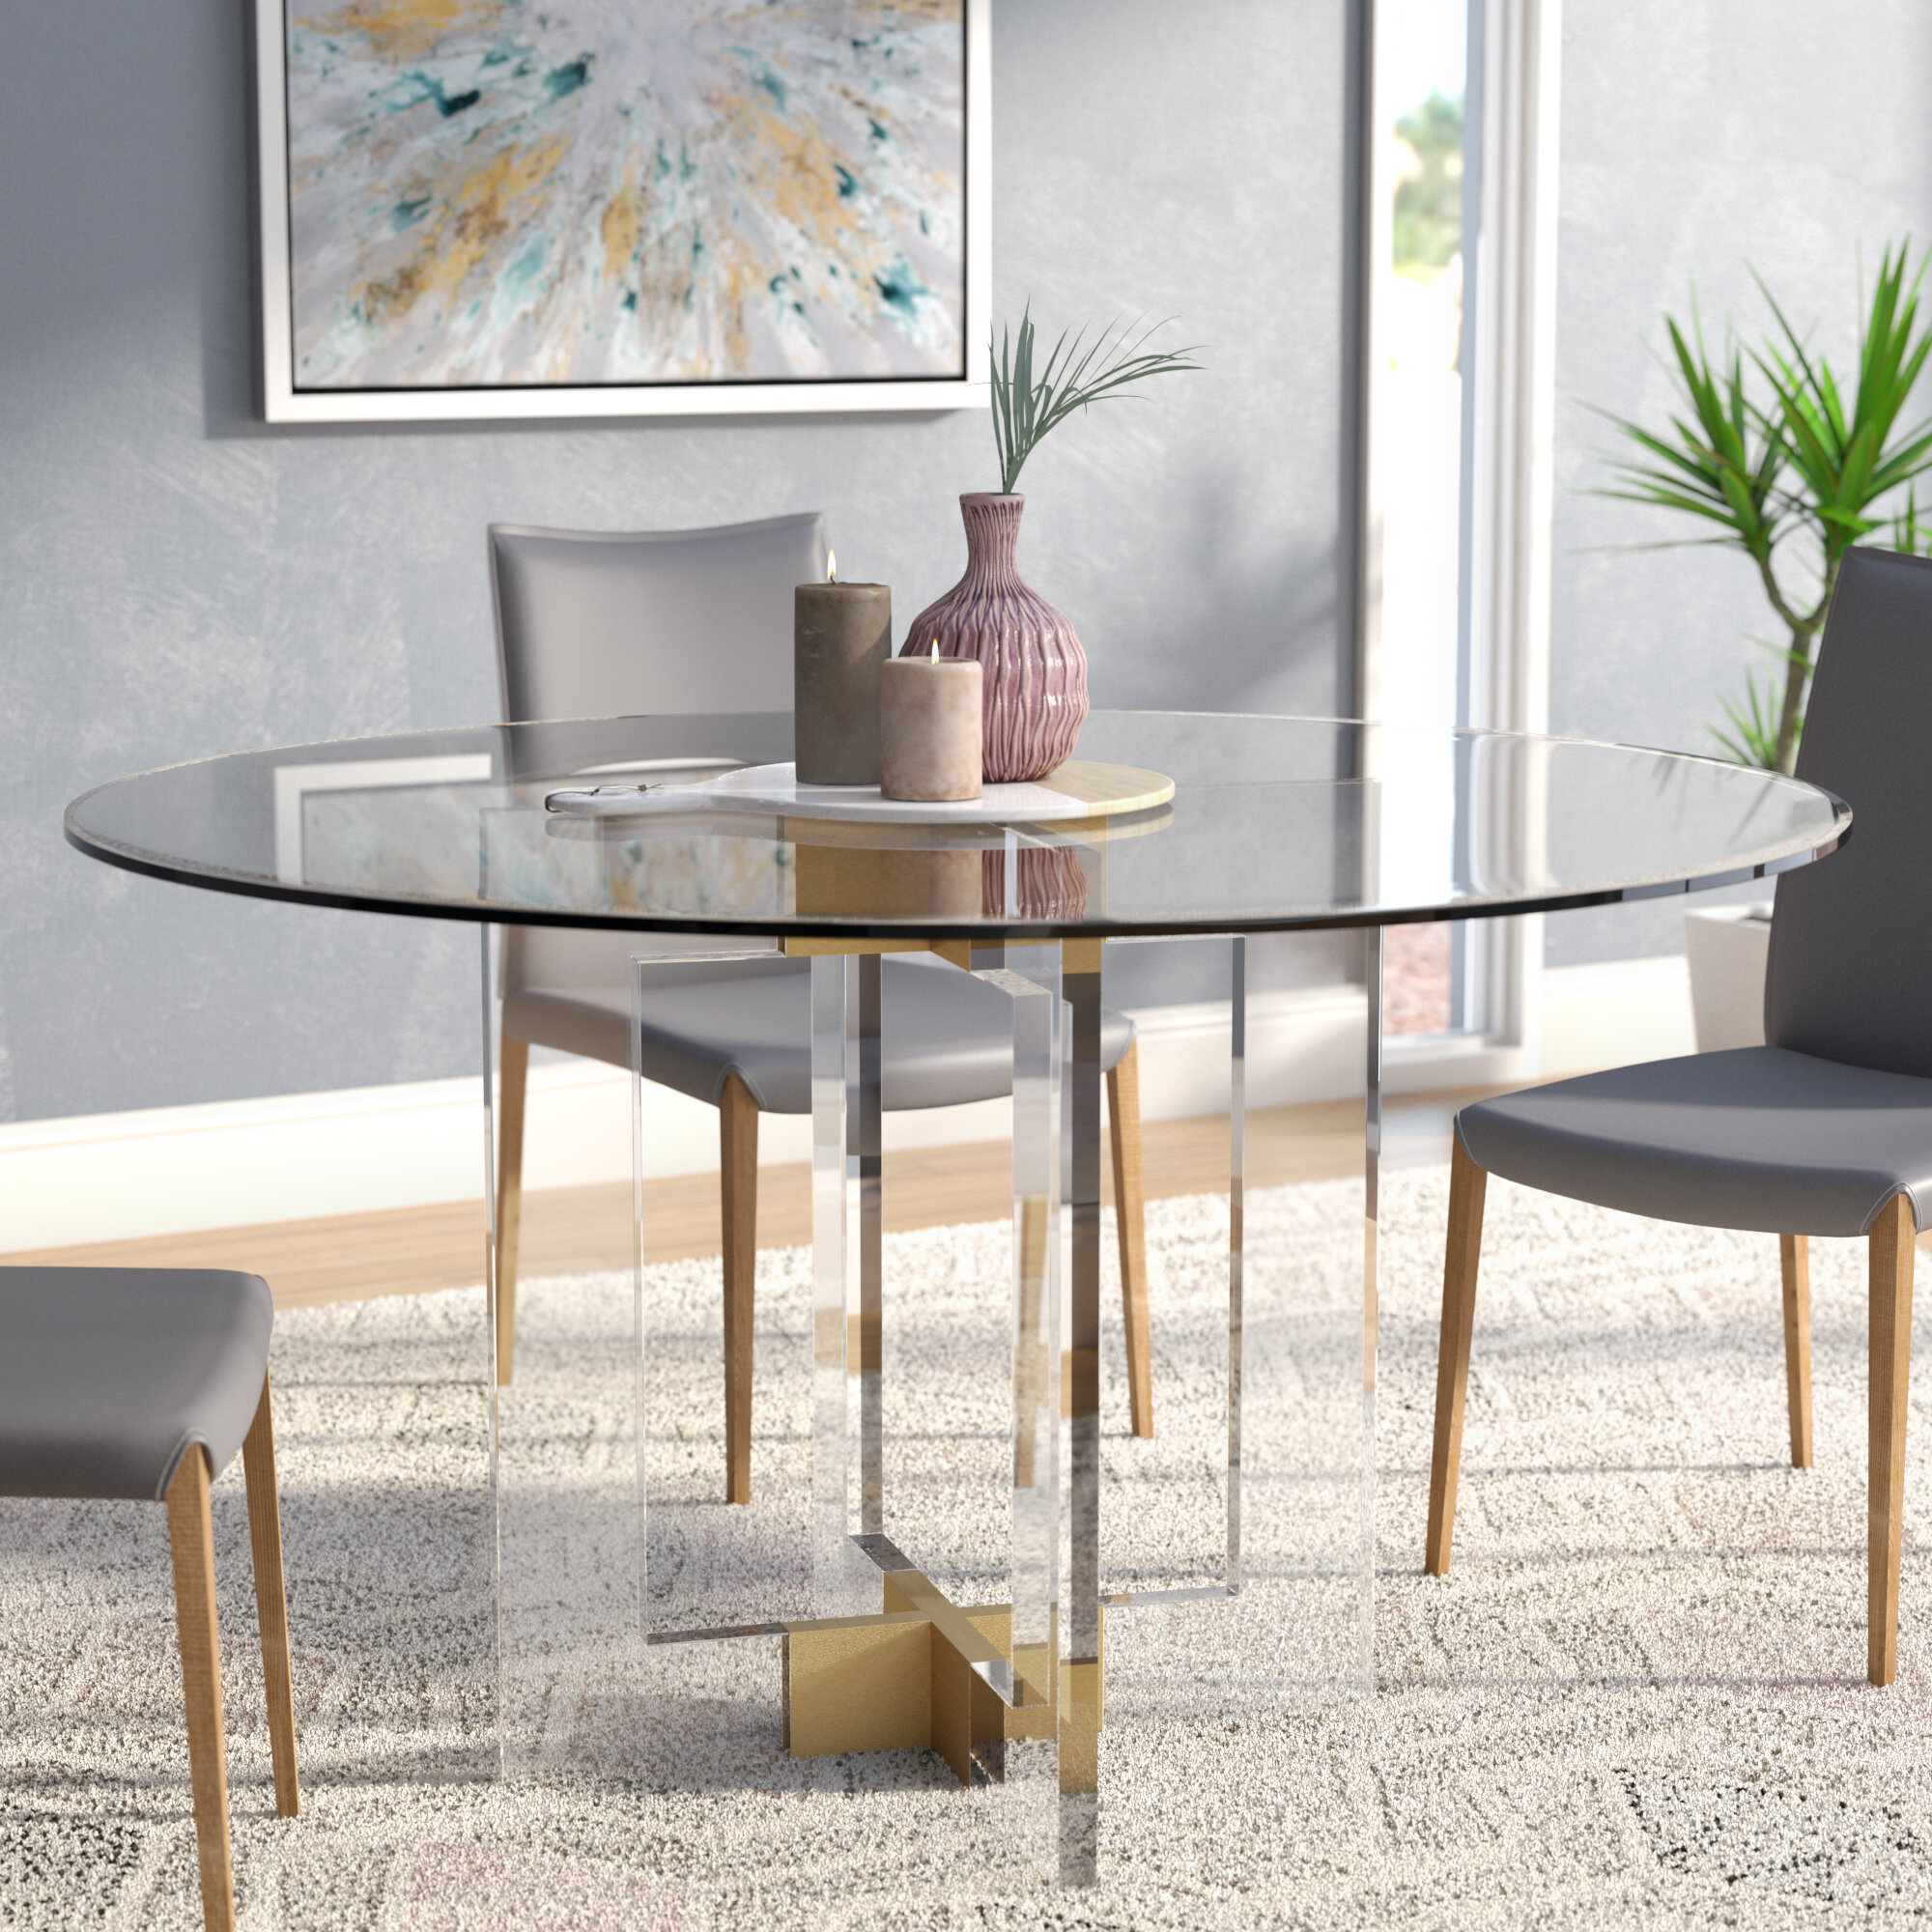 Willa arlo interiors gosta round glass dining table wayfair